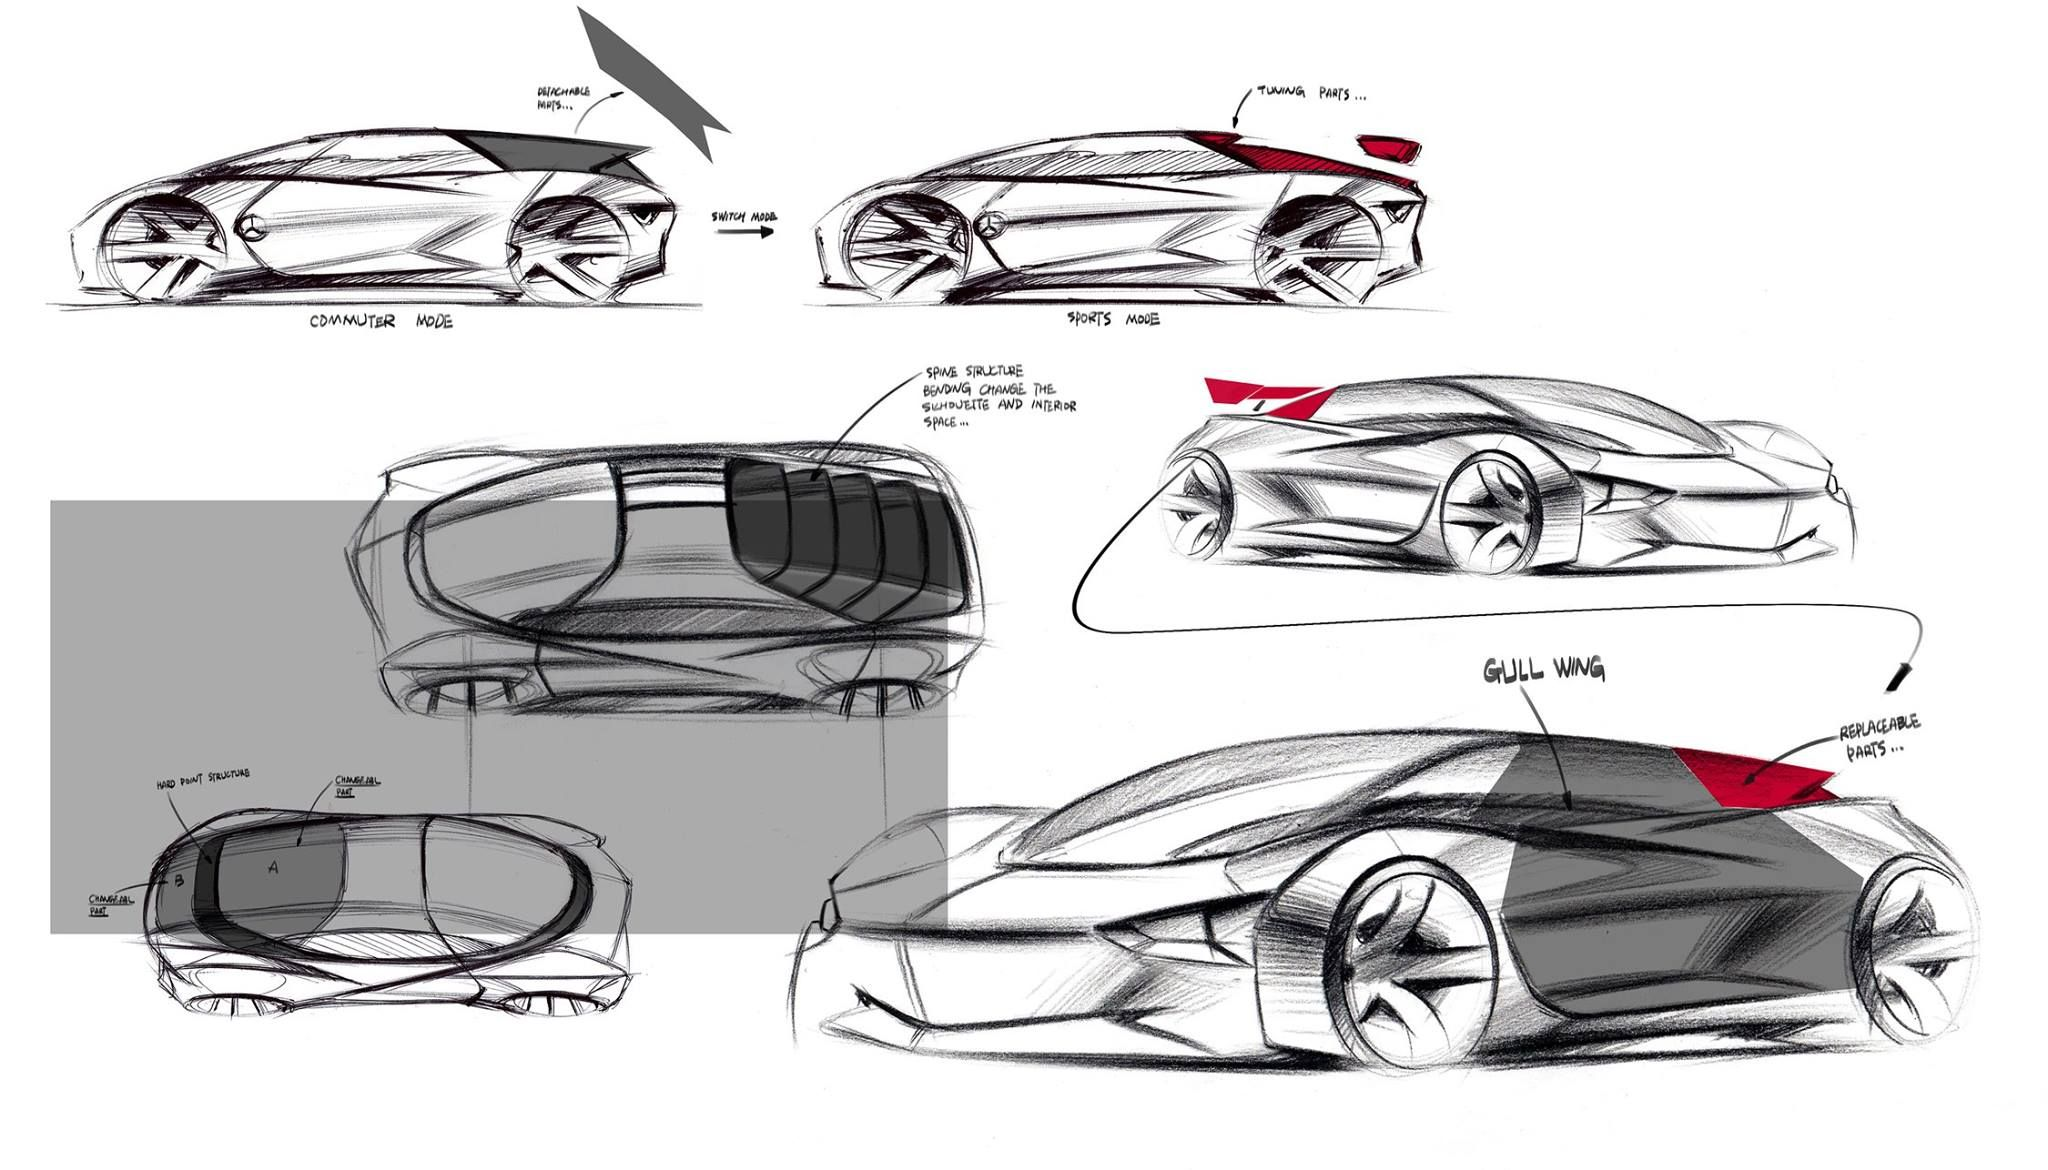 Pin by Jingmin Li on Car Rendering | Pinterest | Sketches and ...